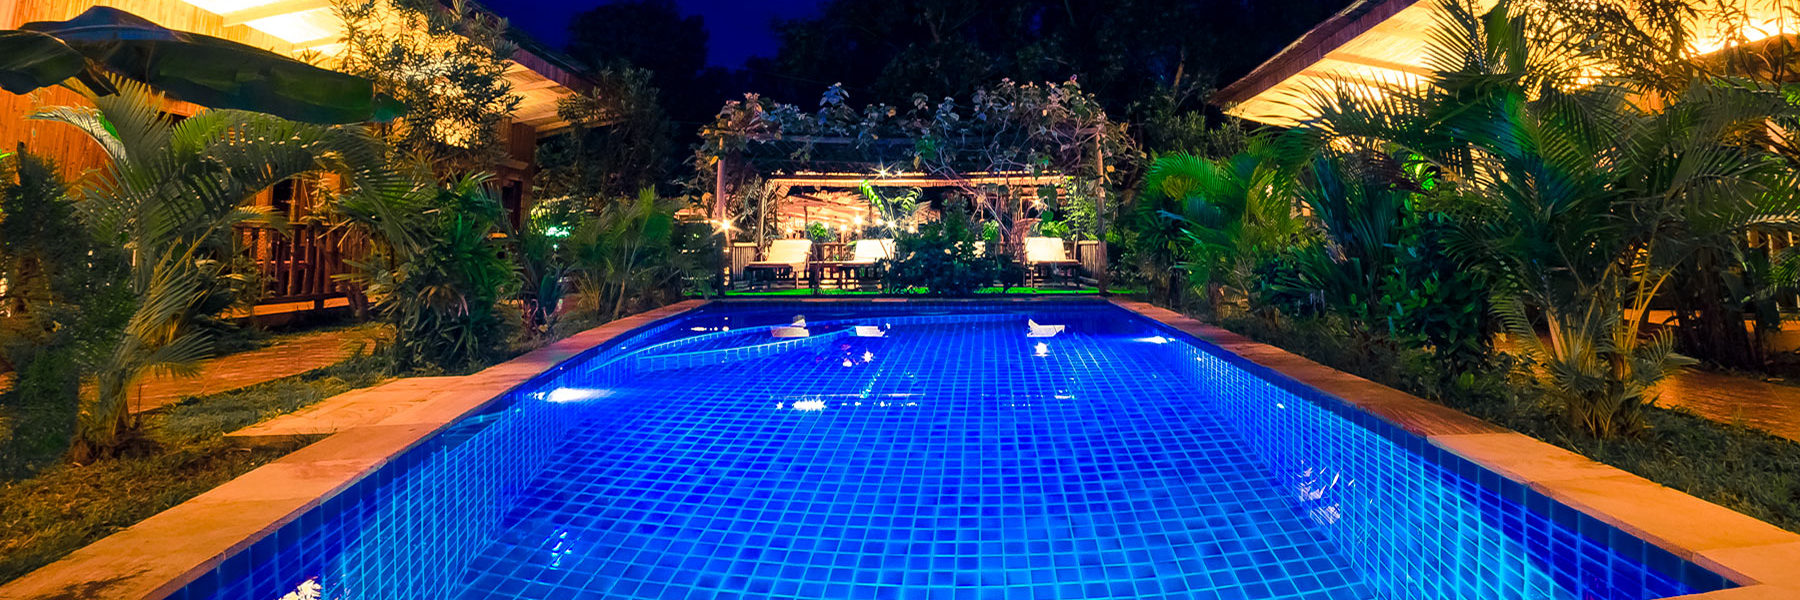 Central swimming pool with the tropical garden area at night and surrounded by the bungalows for the guests in Sok Sabay Resort, Otres Village - Cambodia.